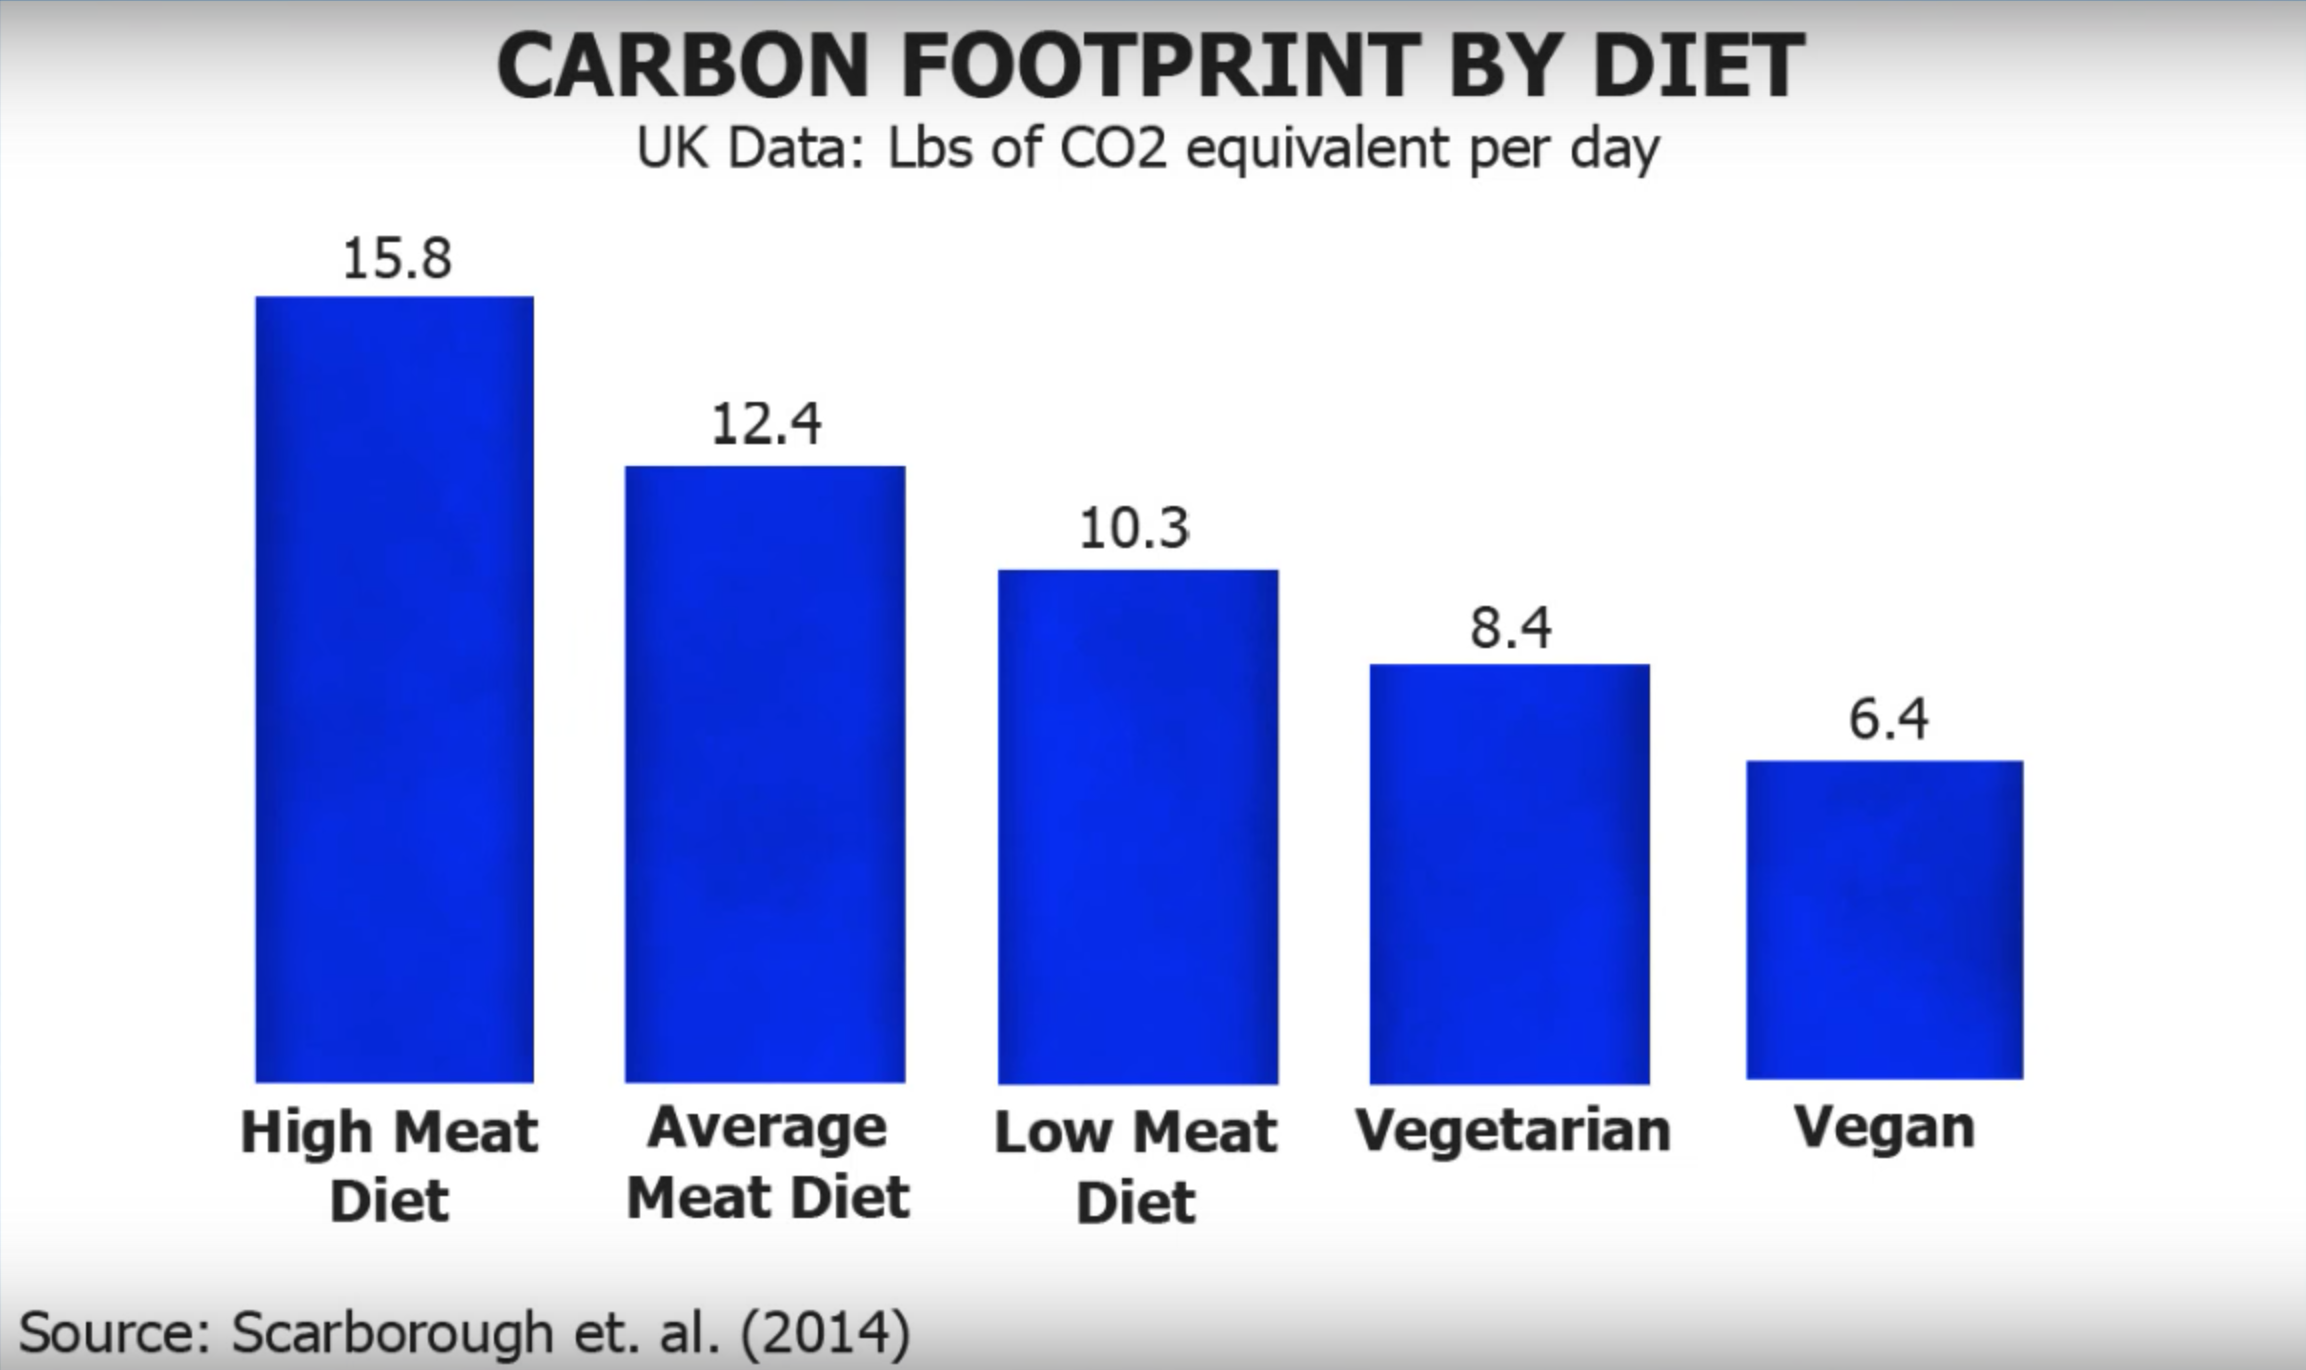 chart showing the carbon footprint by diet. A high meat diet has the largest carbon footprint and a vegan diet has the least.